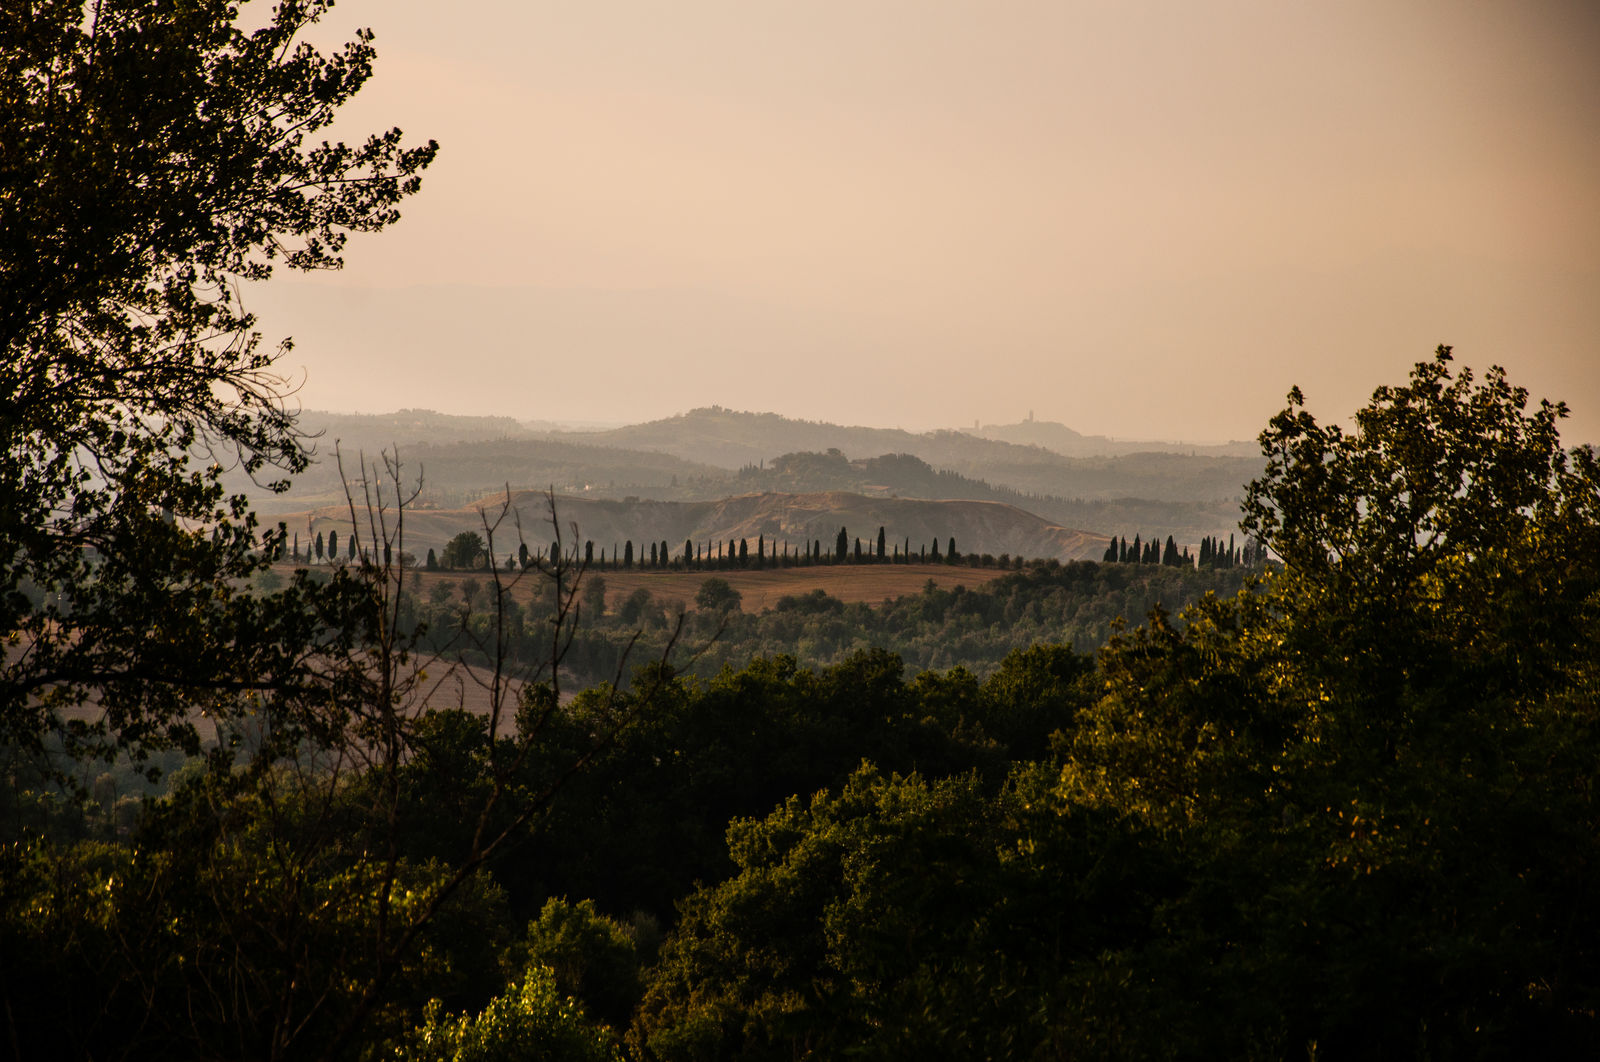 Gambassi Terme - Gambassi Terme: via Francigena and wellness - Tuscany, Beautiful Everywhere